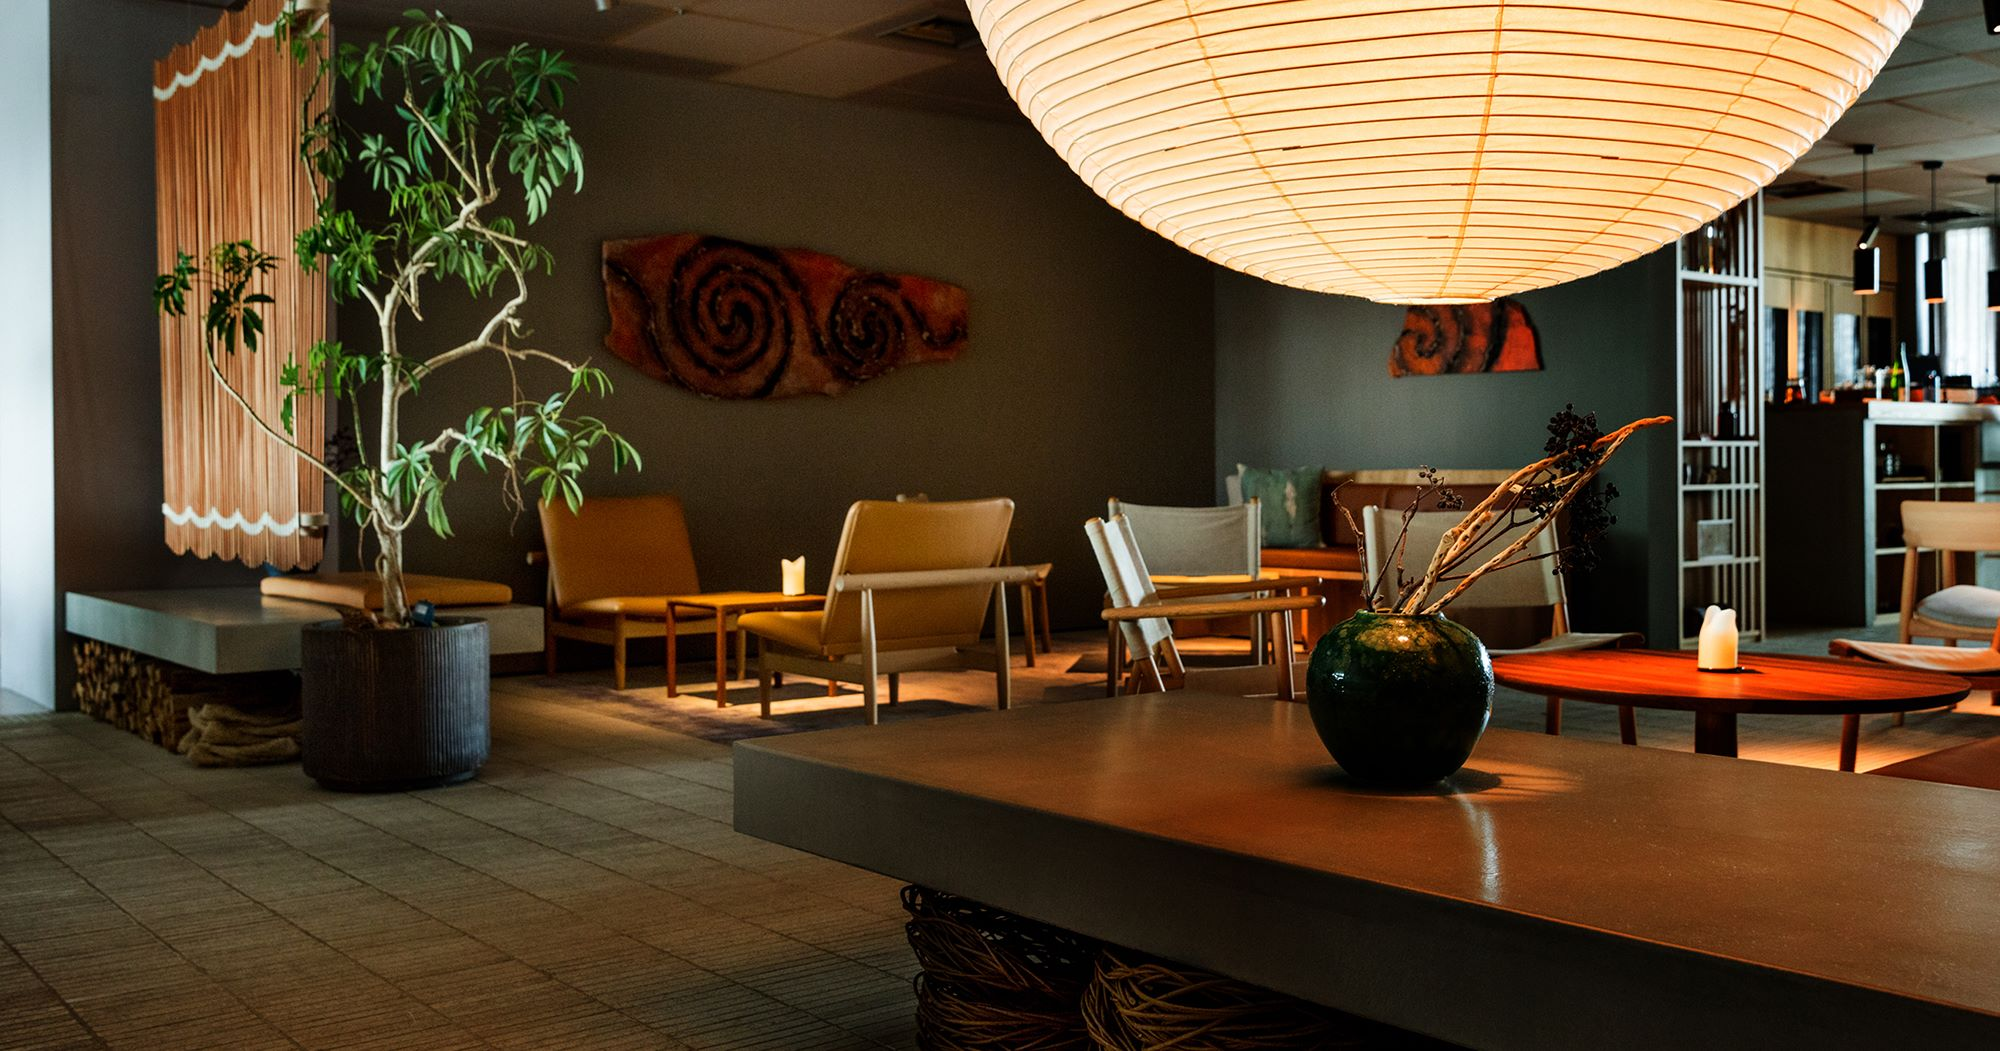 The relaxing and cosy atmosphere flows through the lounge area with a bar counter and sofa, besides the dining area.